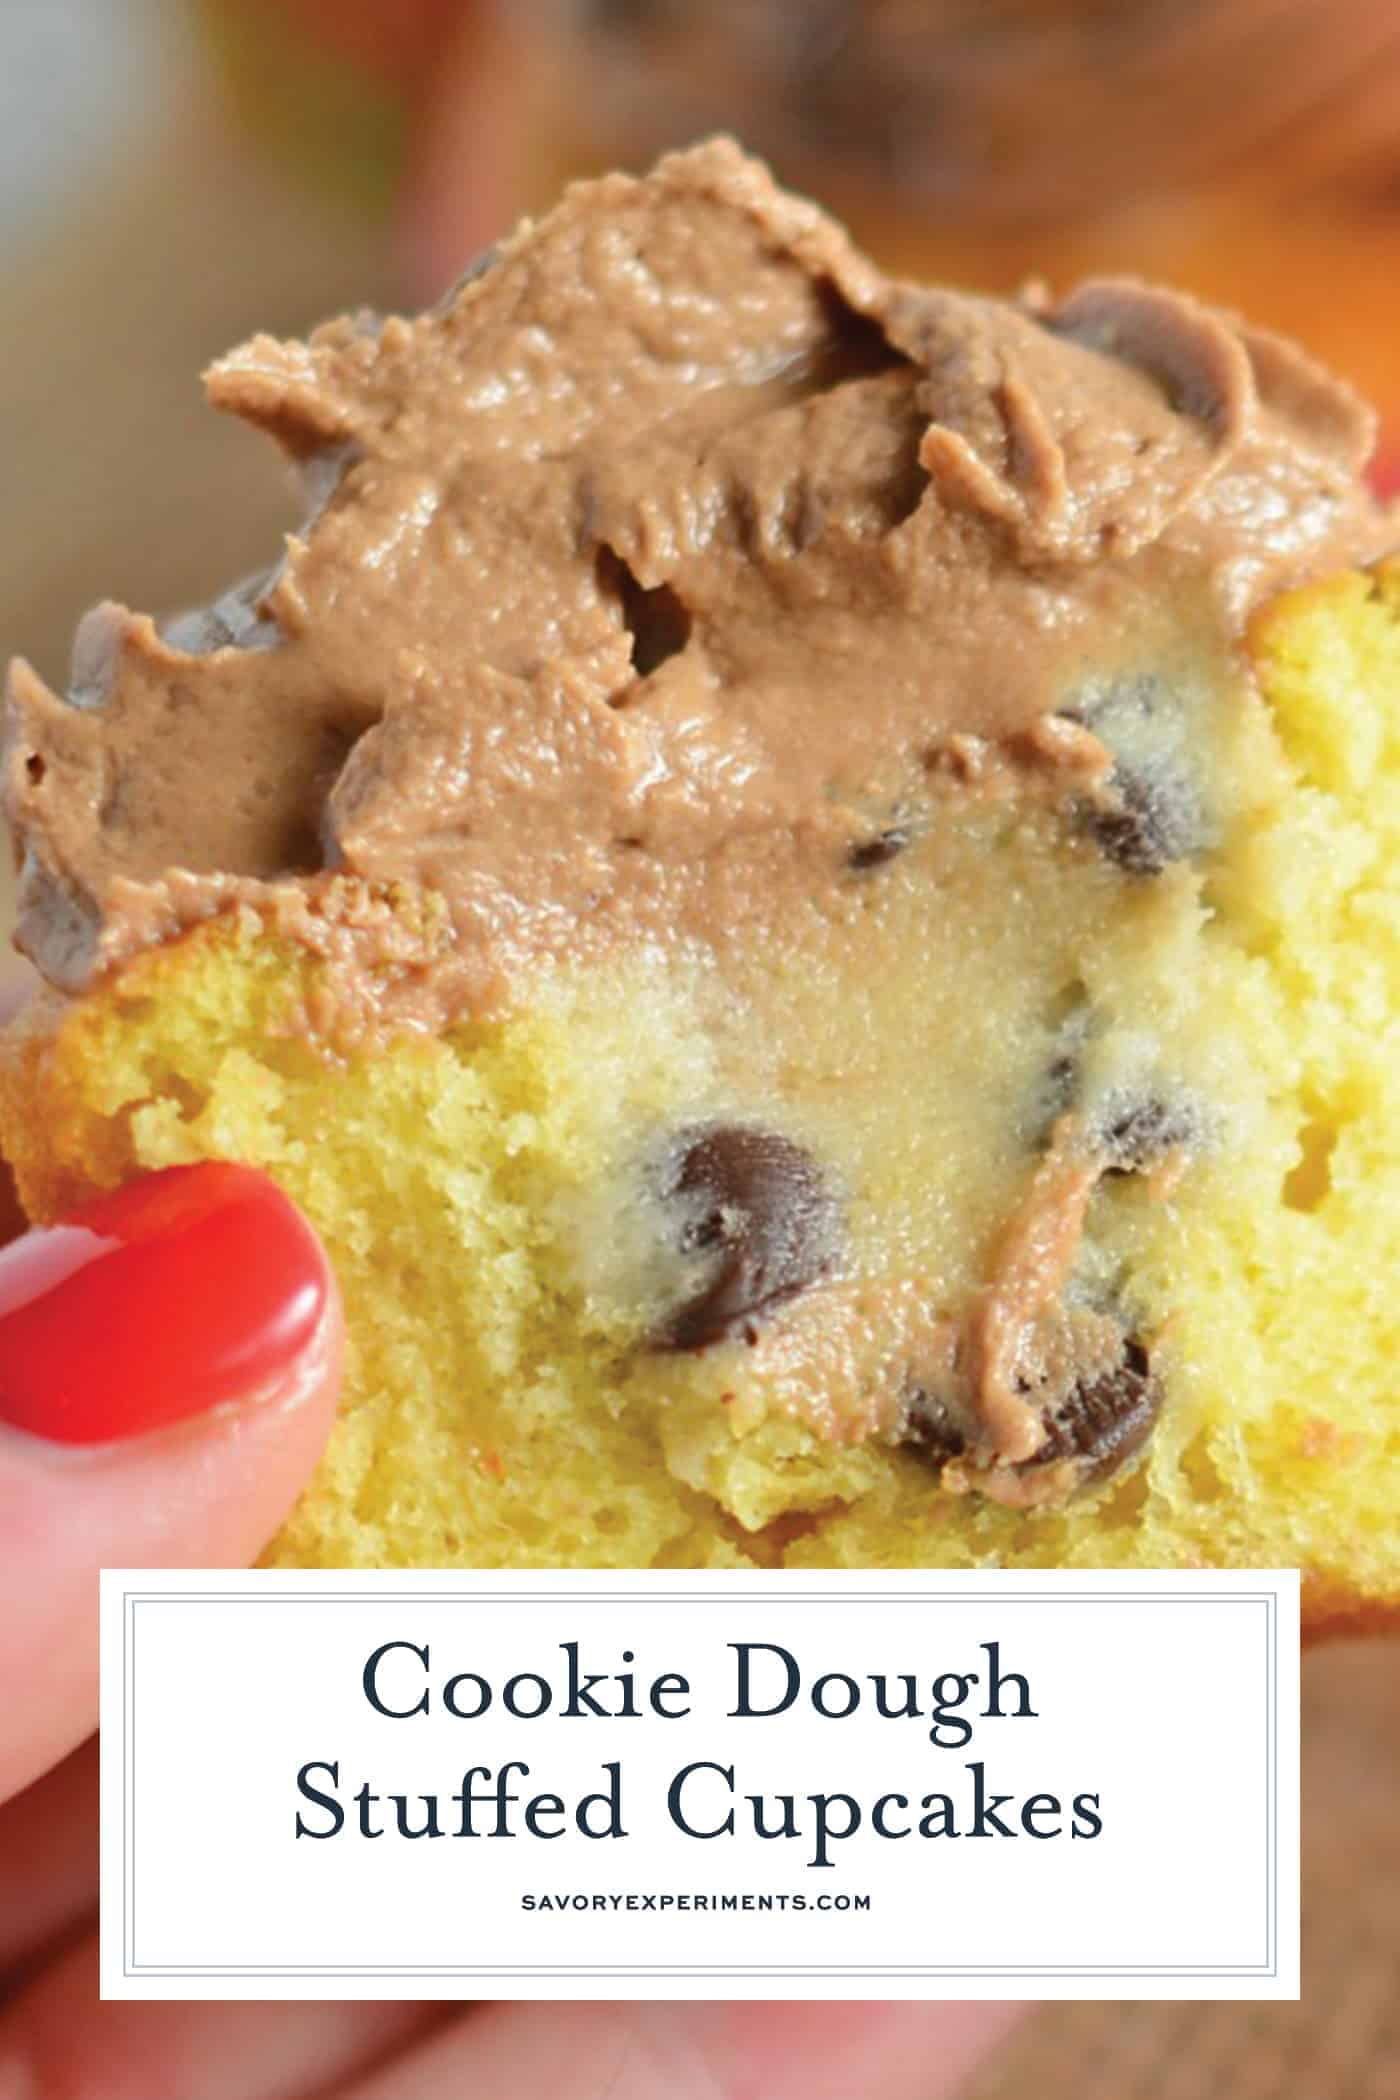 Cookie Dough Stuffed Cupcakes are vanilla cupcakes stuffed with edible cookie dough and topped with whipped chocolate frosting. You won't beleive how easy these are to make!#stuffedcupcakes #cookiedoughstuffedcupcakes www.savoryexperiments.com